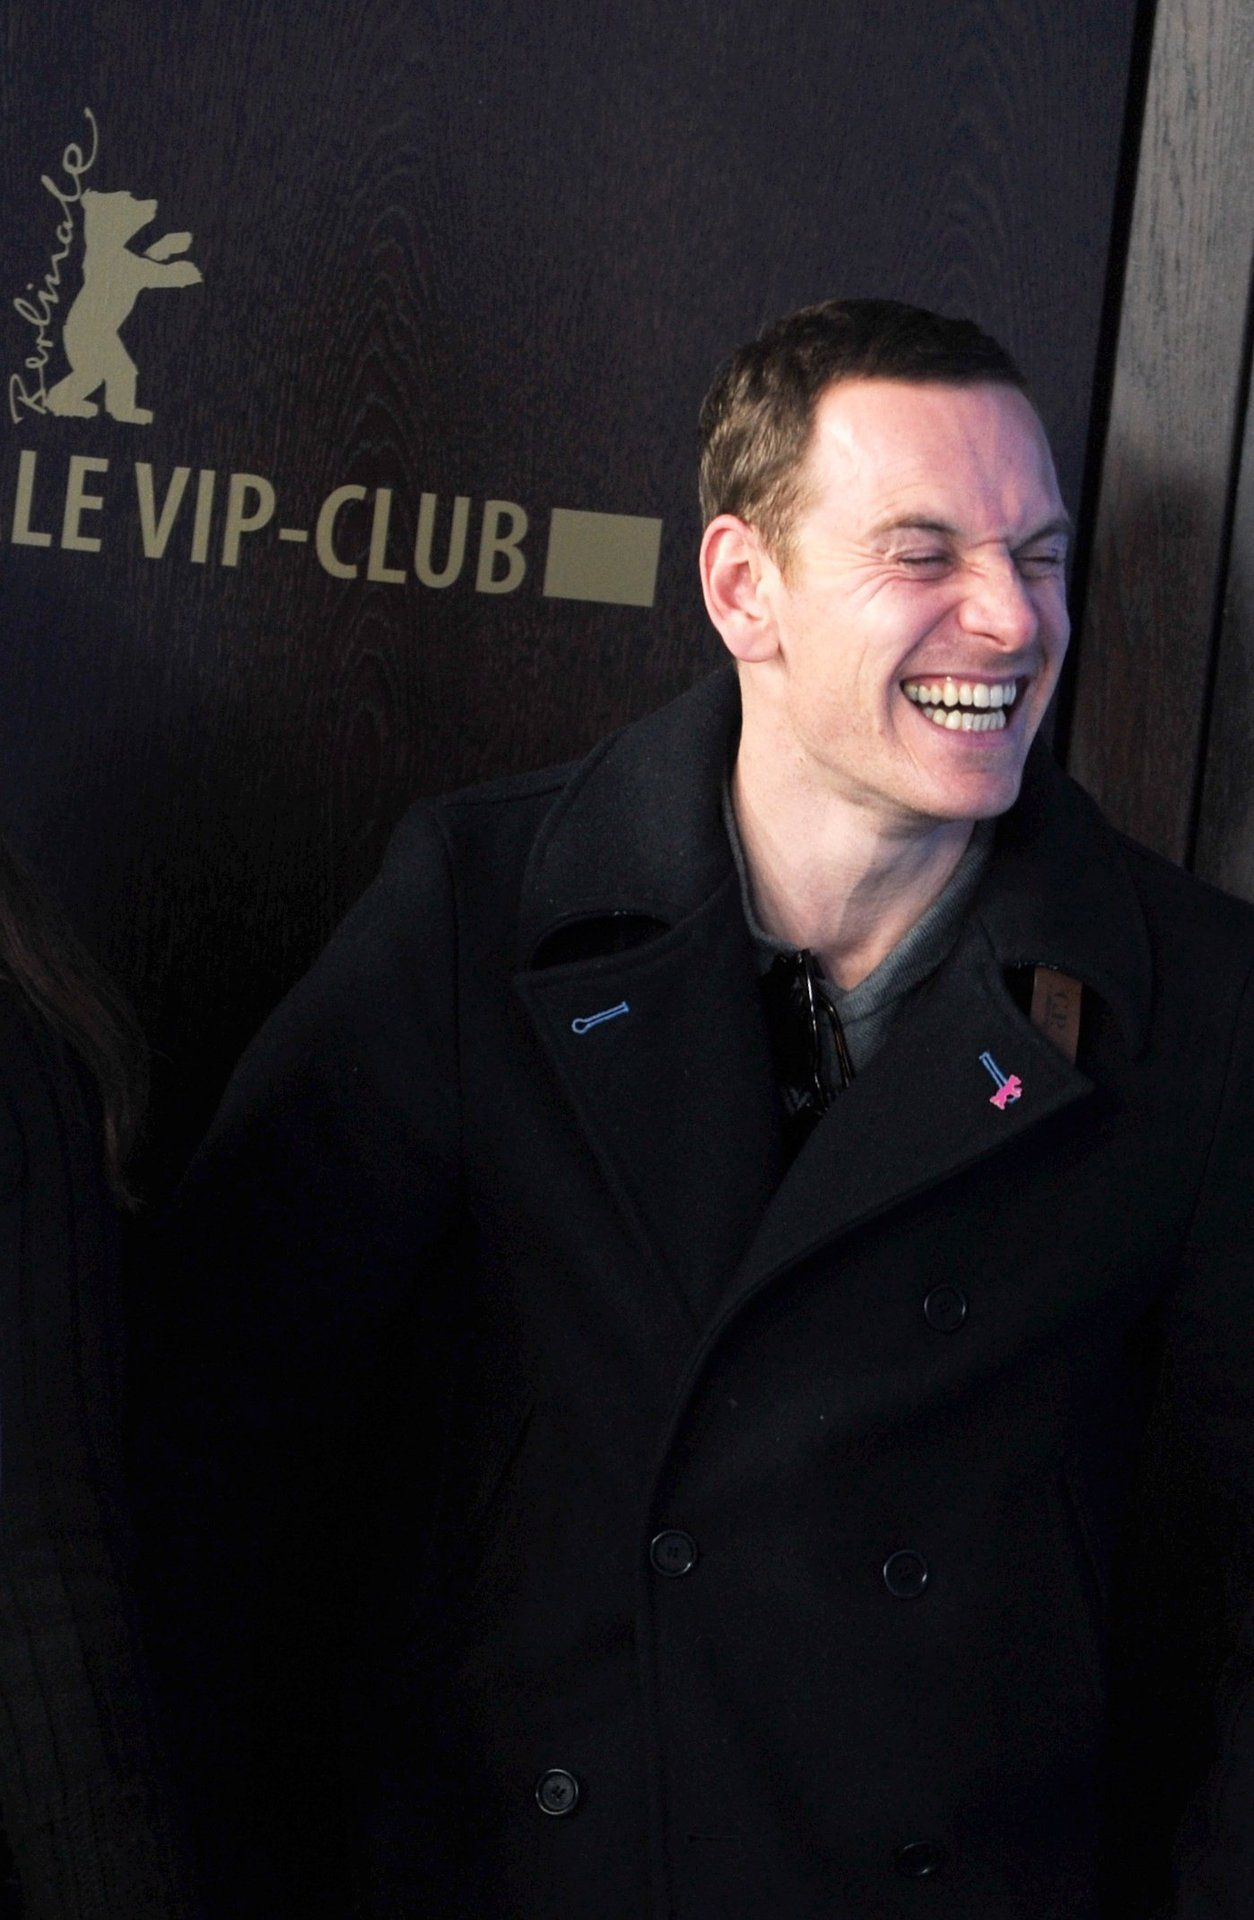 Look at that nose crinkle! Love it